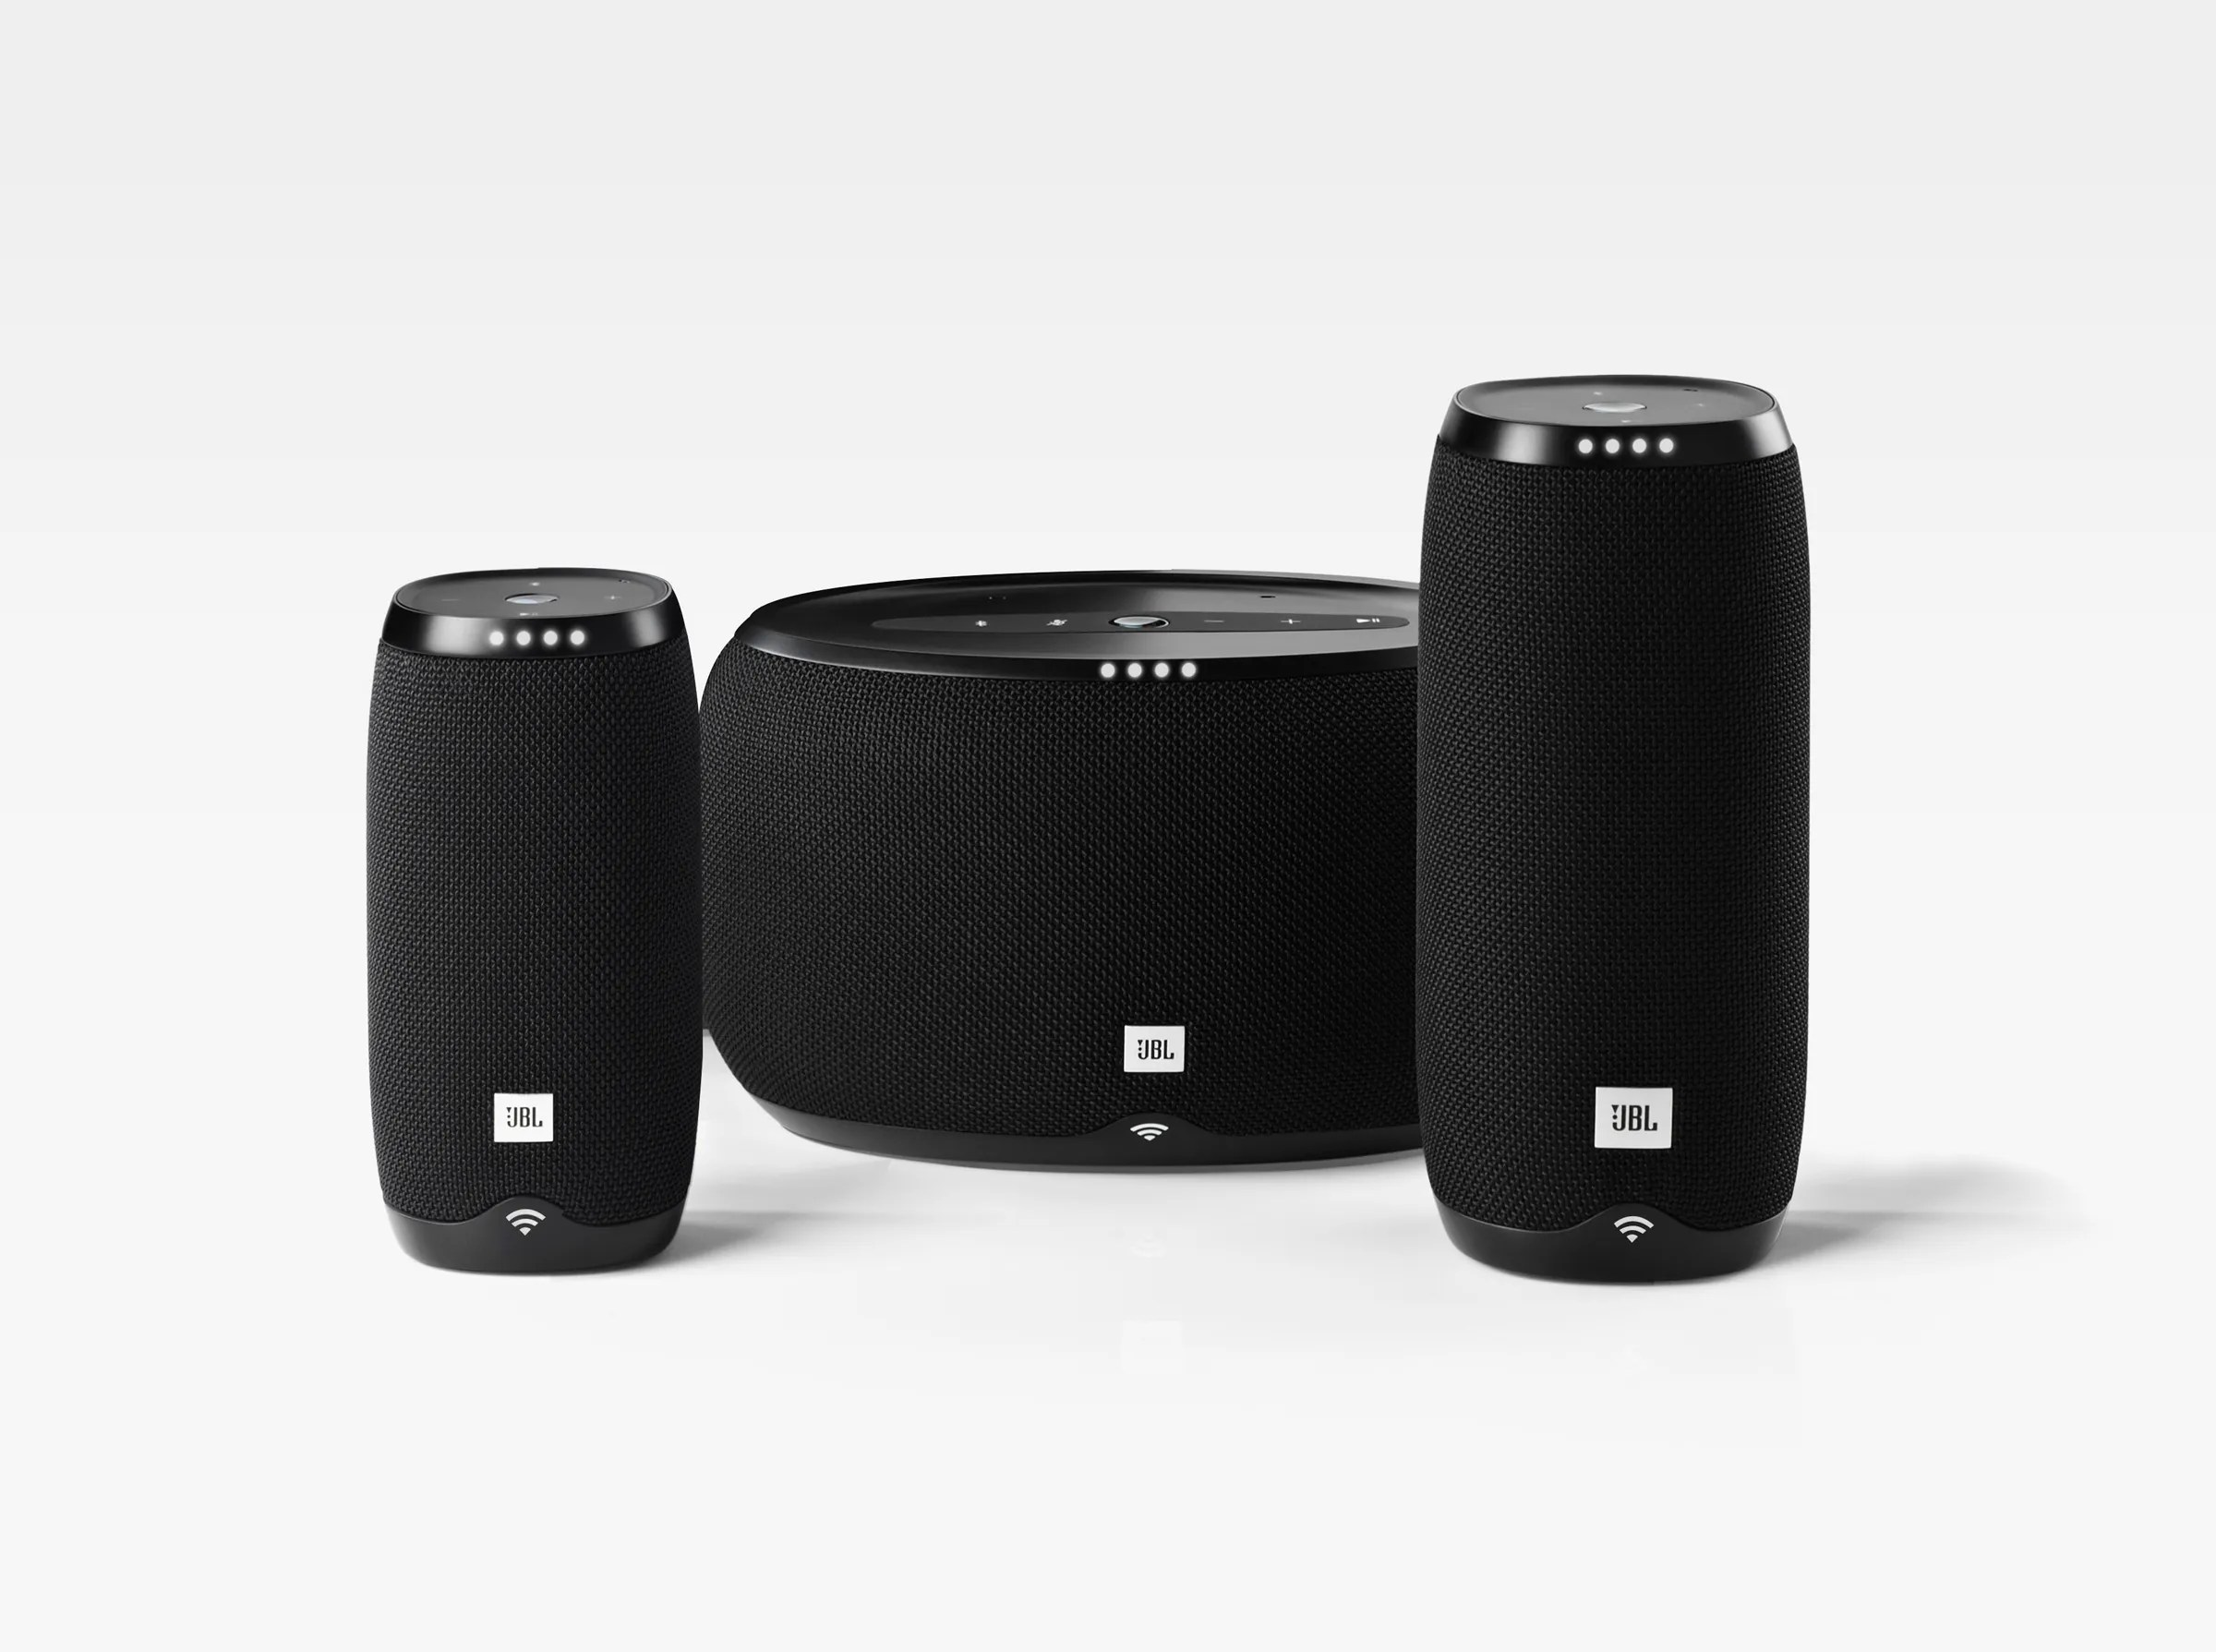 Jb Lighting Wireless Jbl Link Speakers Review Now With Google Assistant